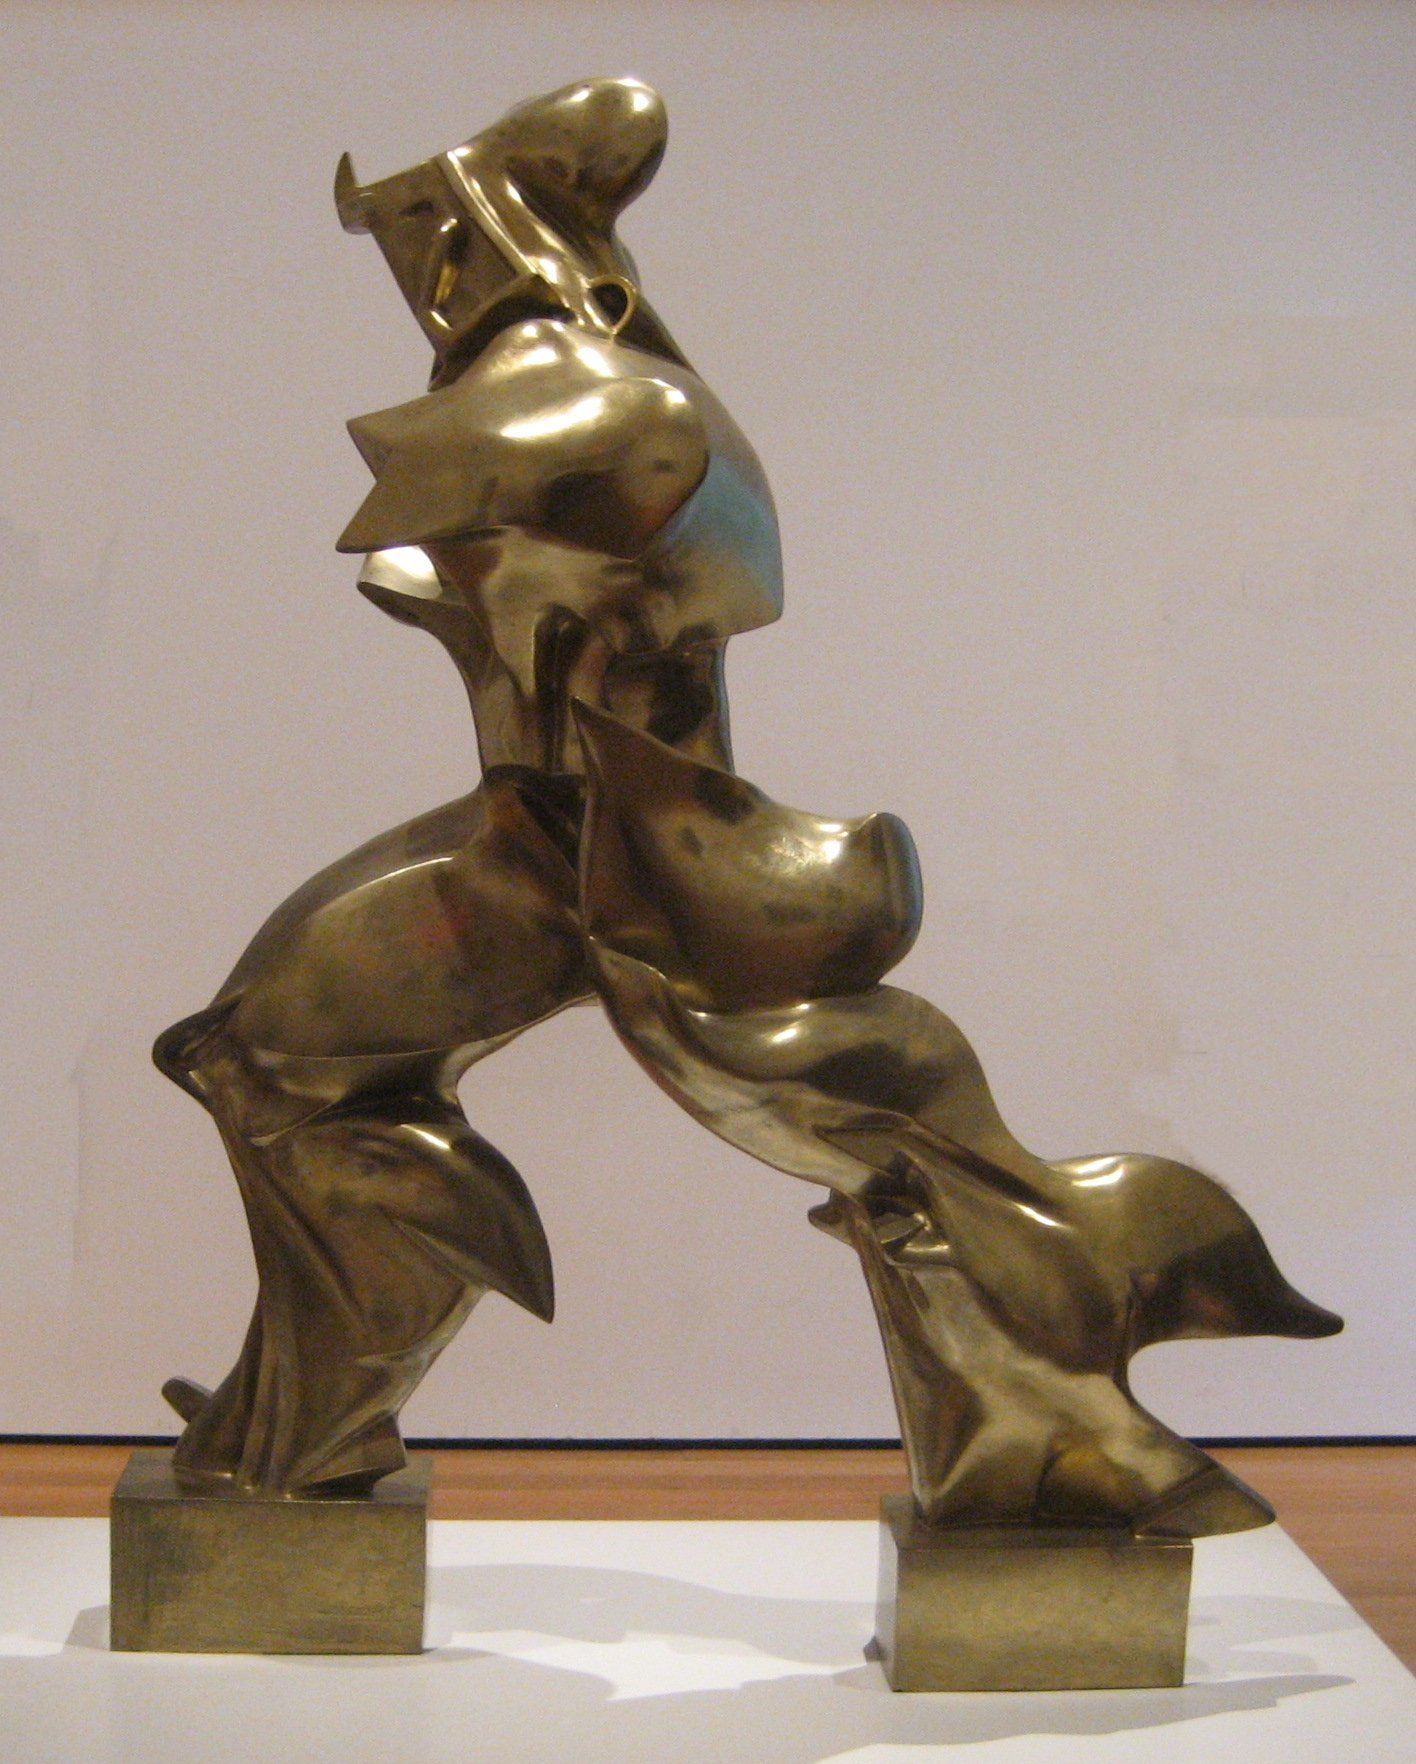 http://upload.wikimedia.org/wikipedia/commons/f/fd/%27Unique_Forms_of_Continuity_in_Space%27%2C_1913_bronze_by_Umberto_Boccioni.jpg